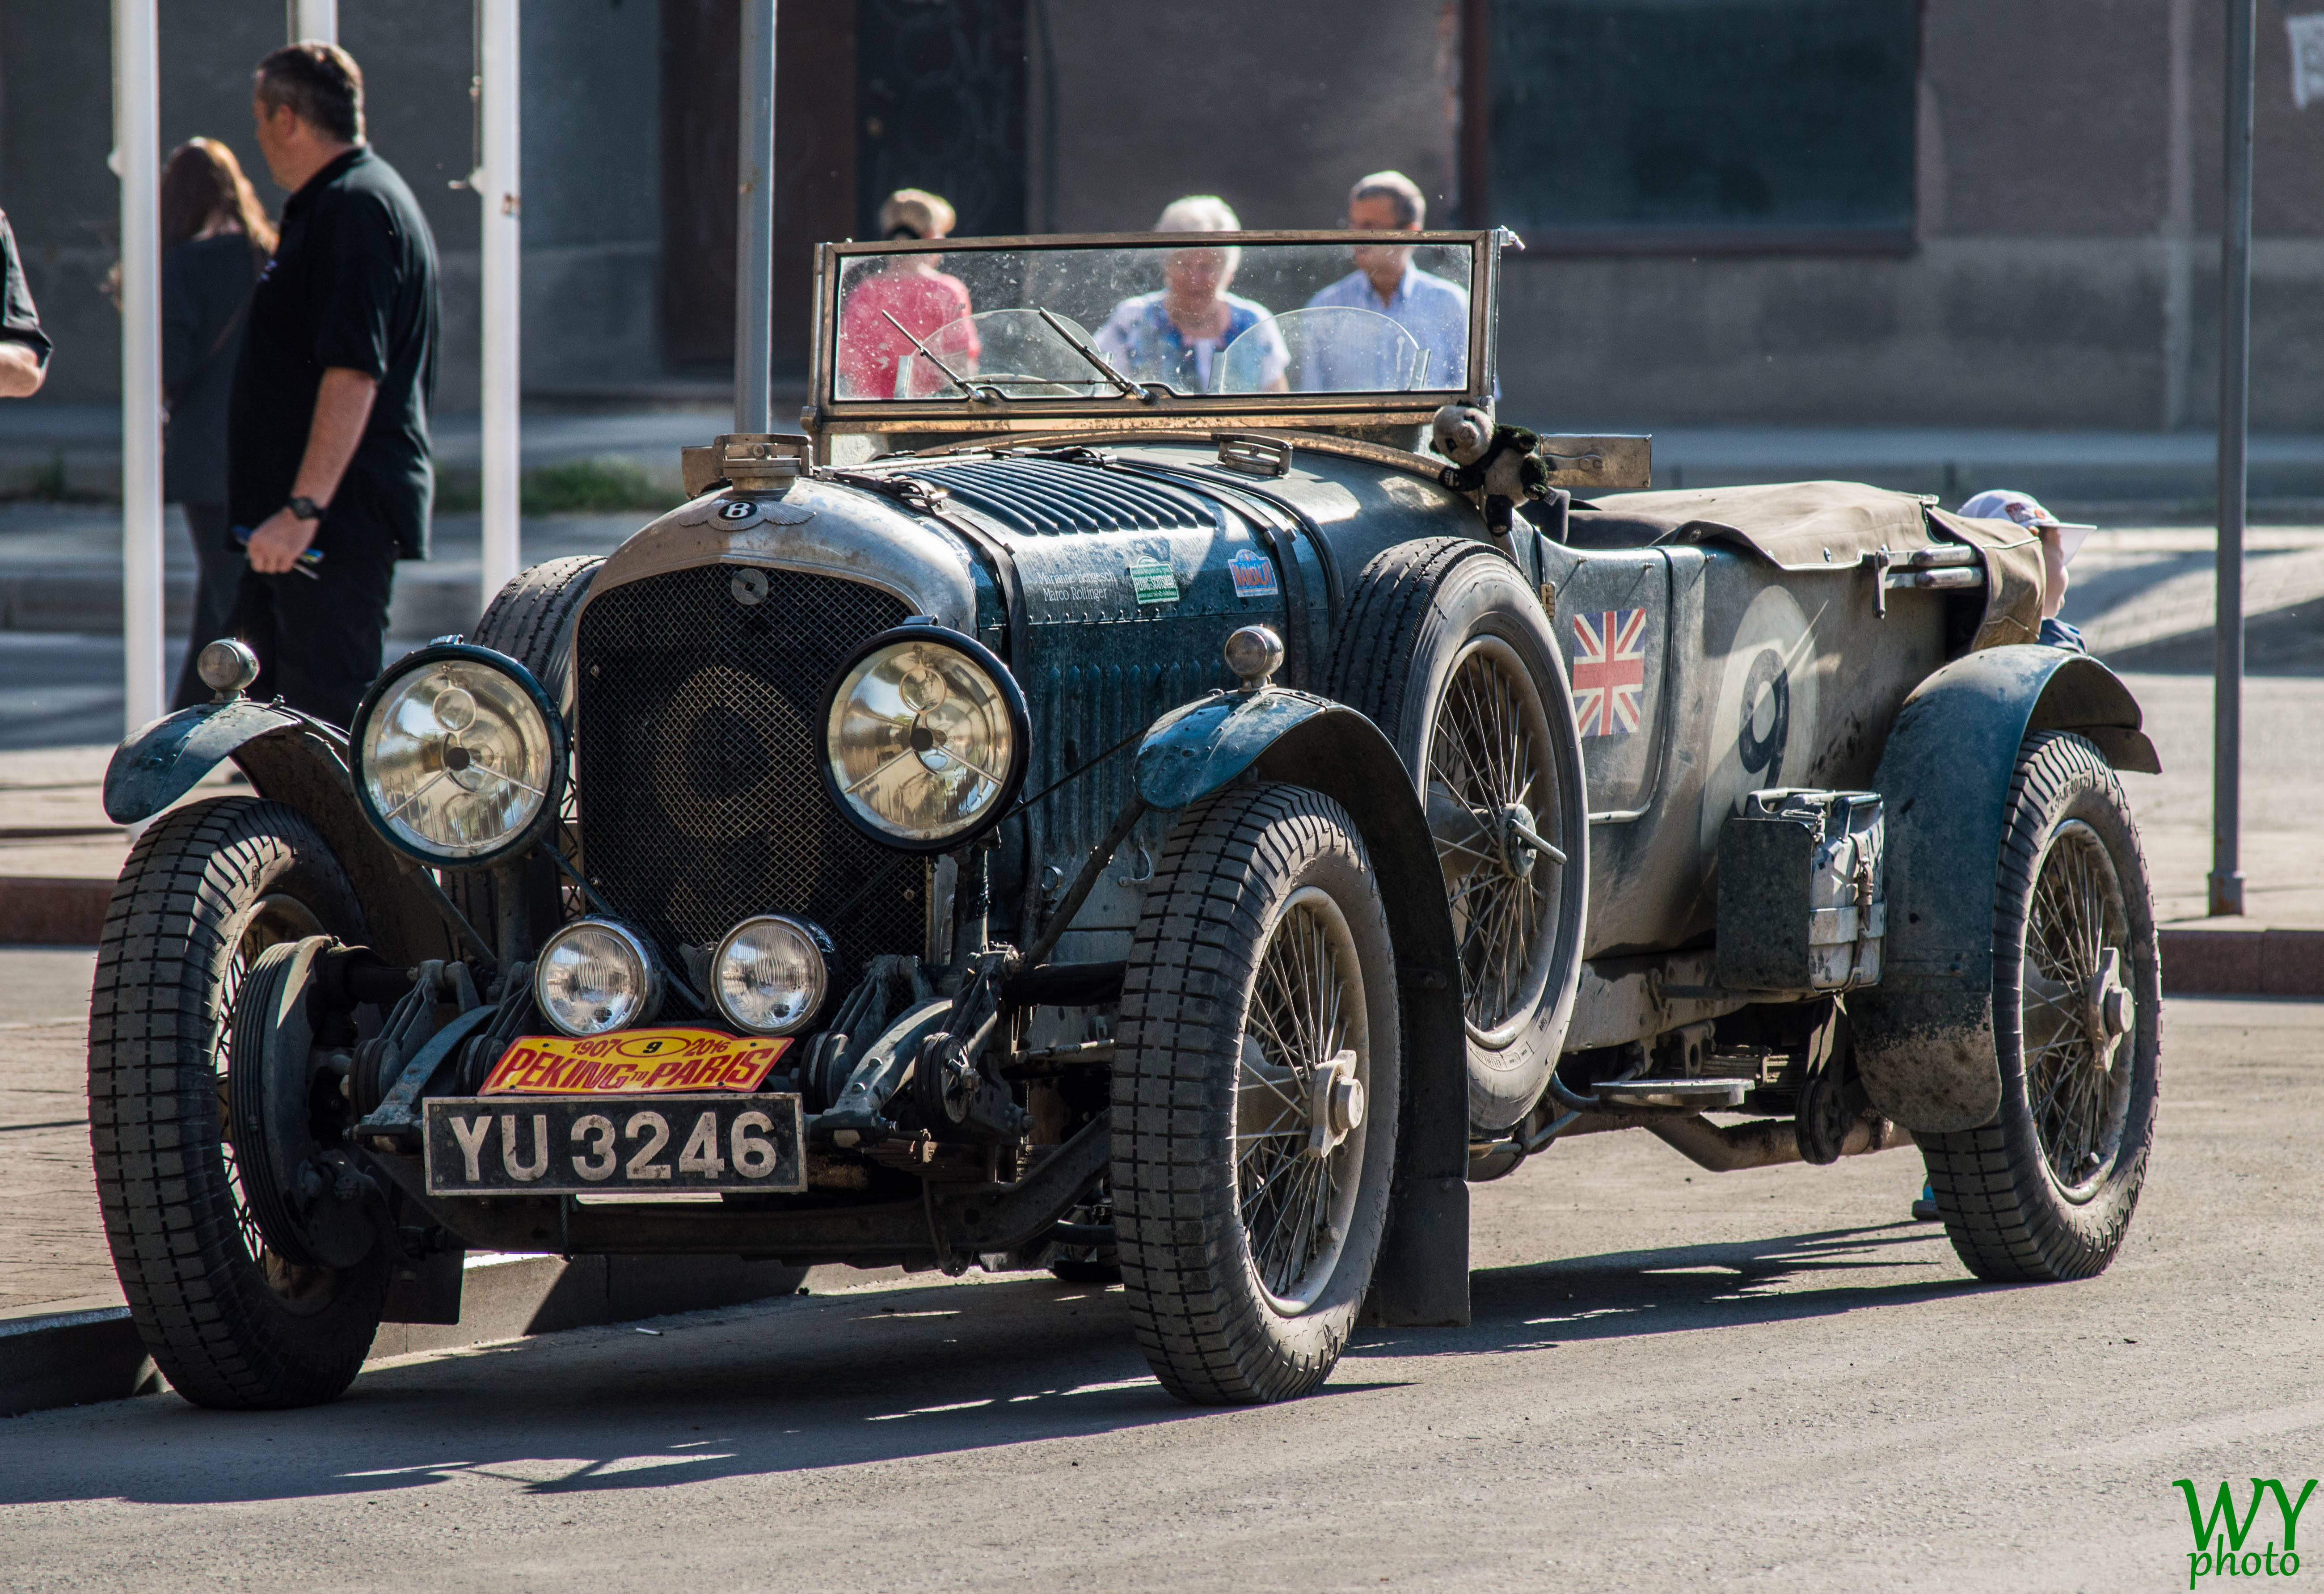 1927 Bentley Le Mans, Auto racing, Bike, Car, Motorcycle, HQ Photo